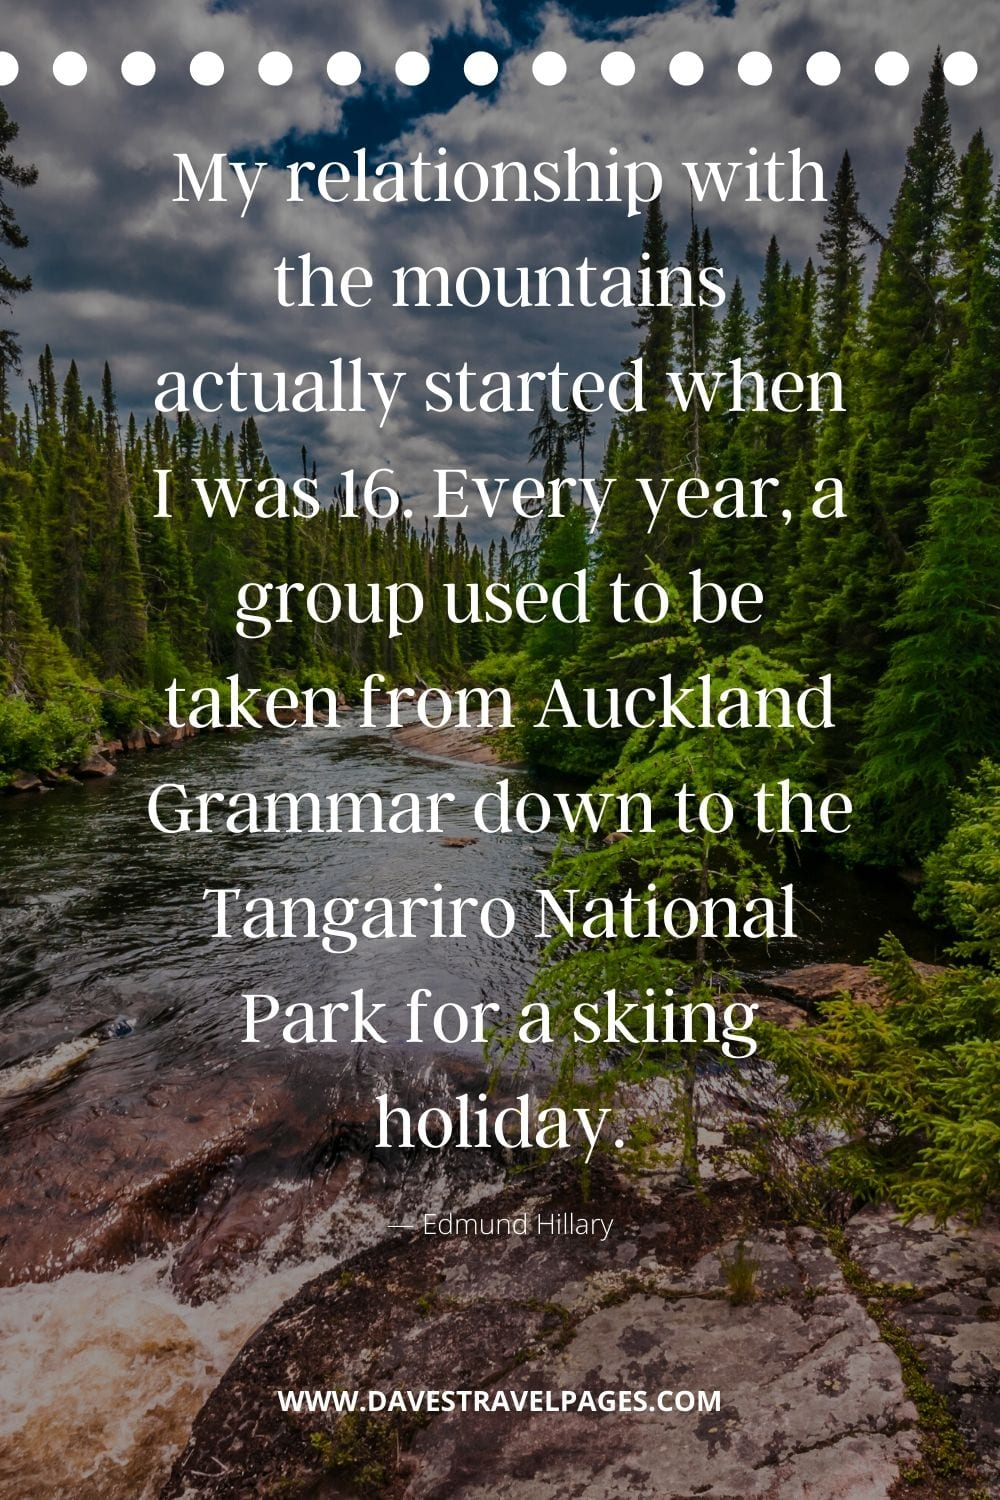 "Edmund Hillary Inspiration: ""My relationship with the mountains actually started when I was 16. Every year, a group used to be taken from Auckland Grammar down to the Tangariro National Park for a skiing holiday."""